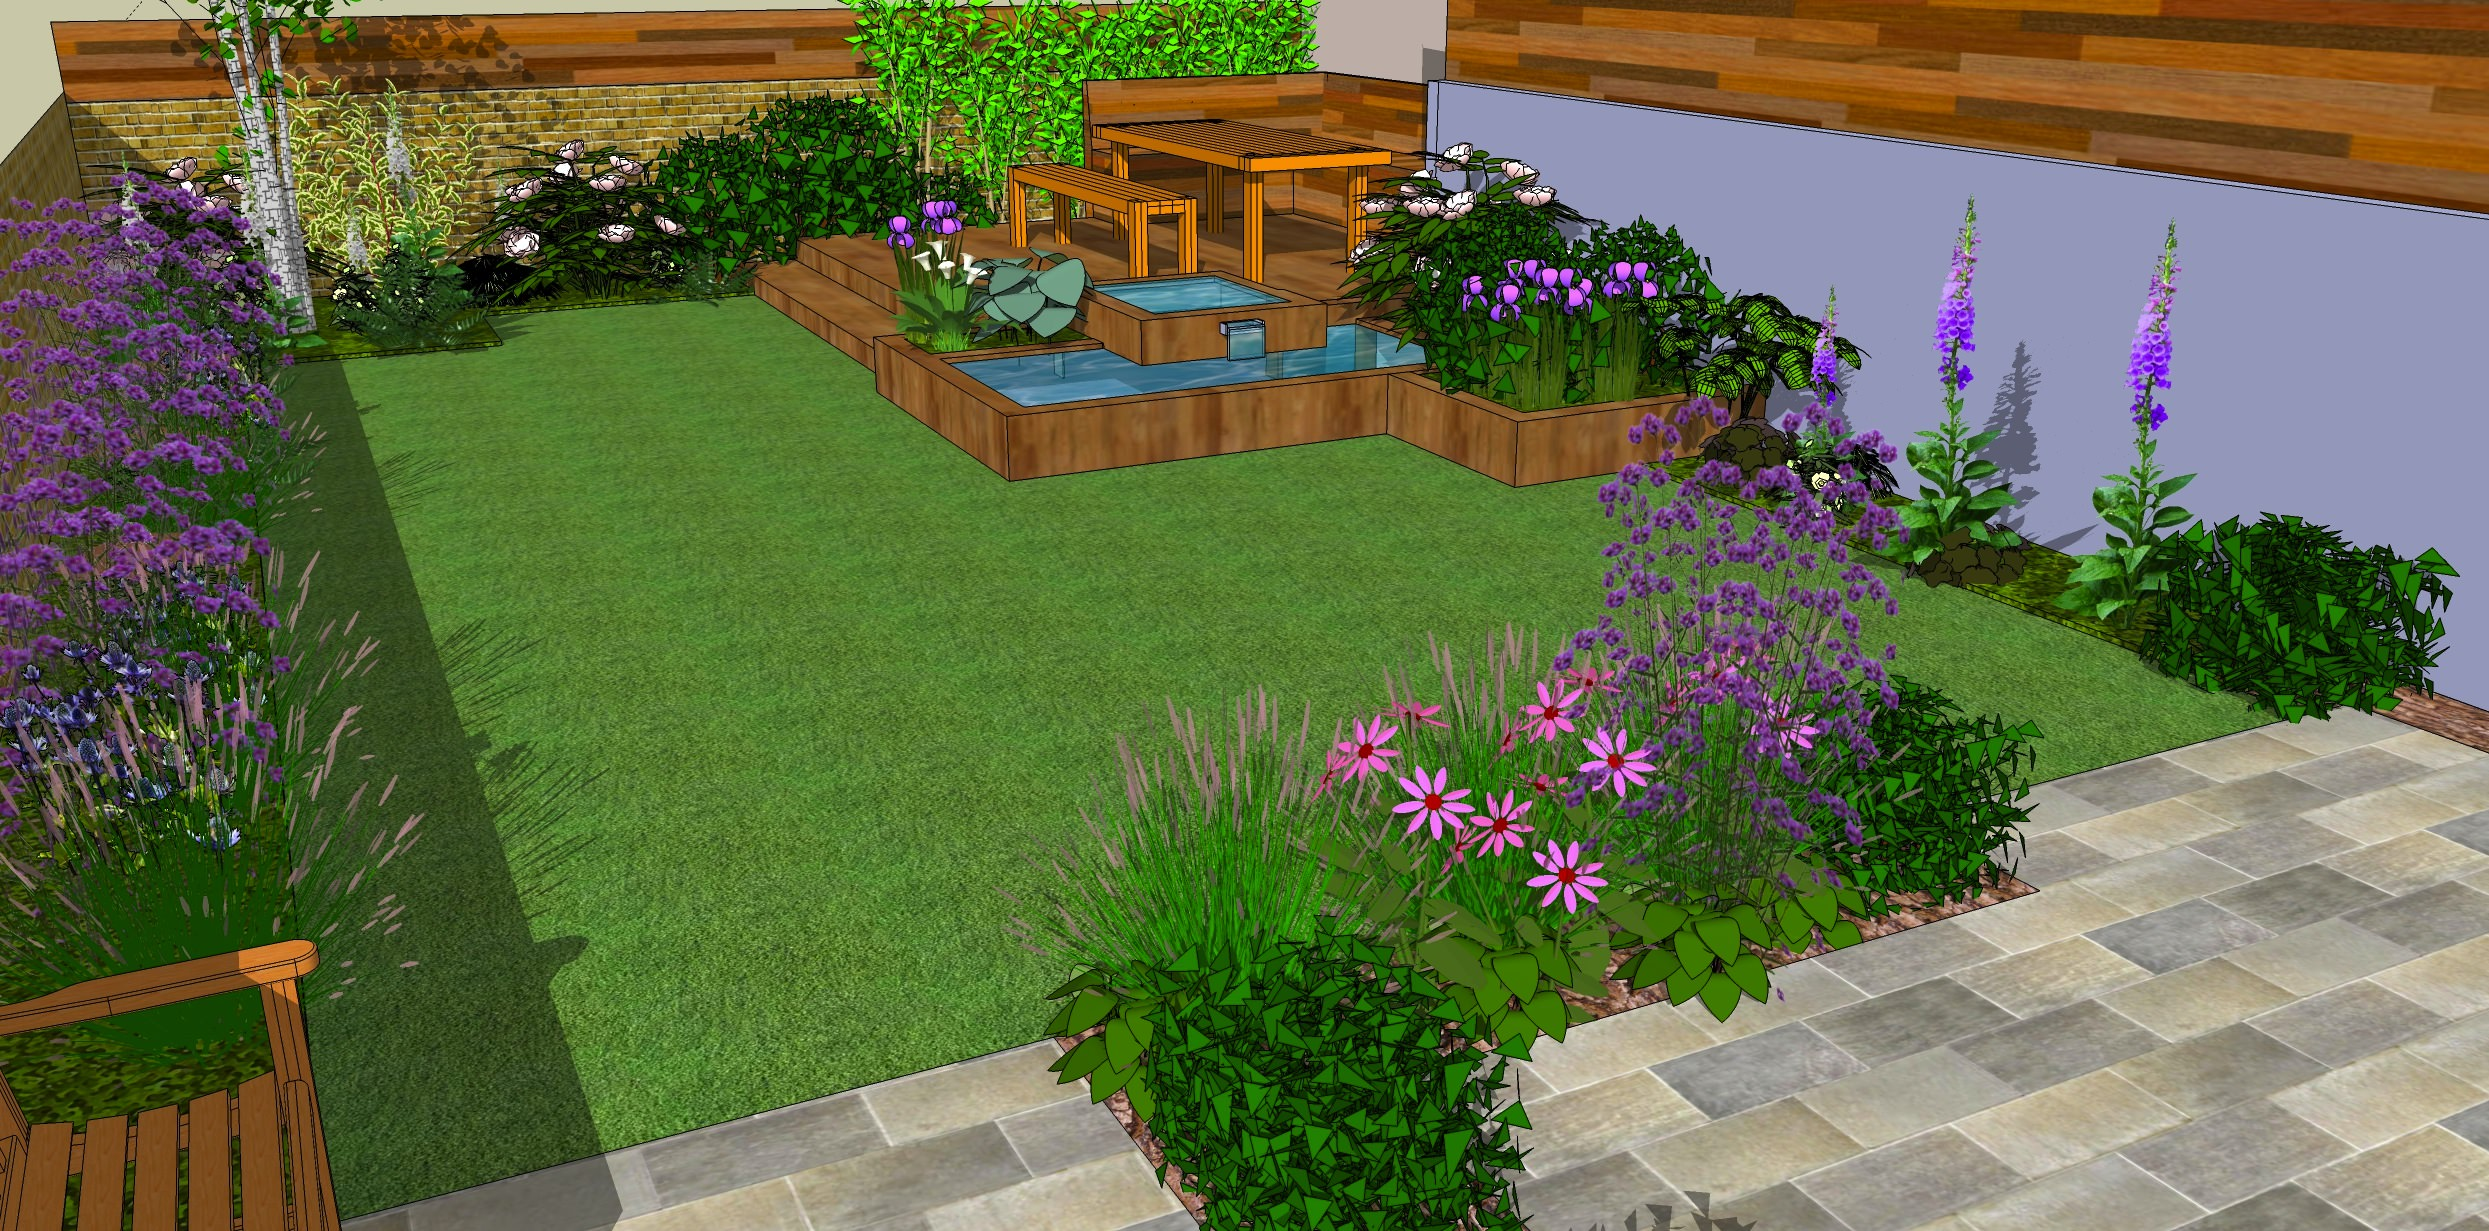 Low maintenance garden designs garden club london for Easy small garden ideas